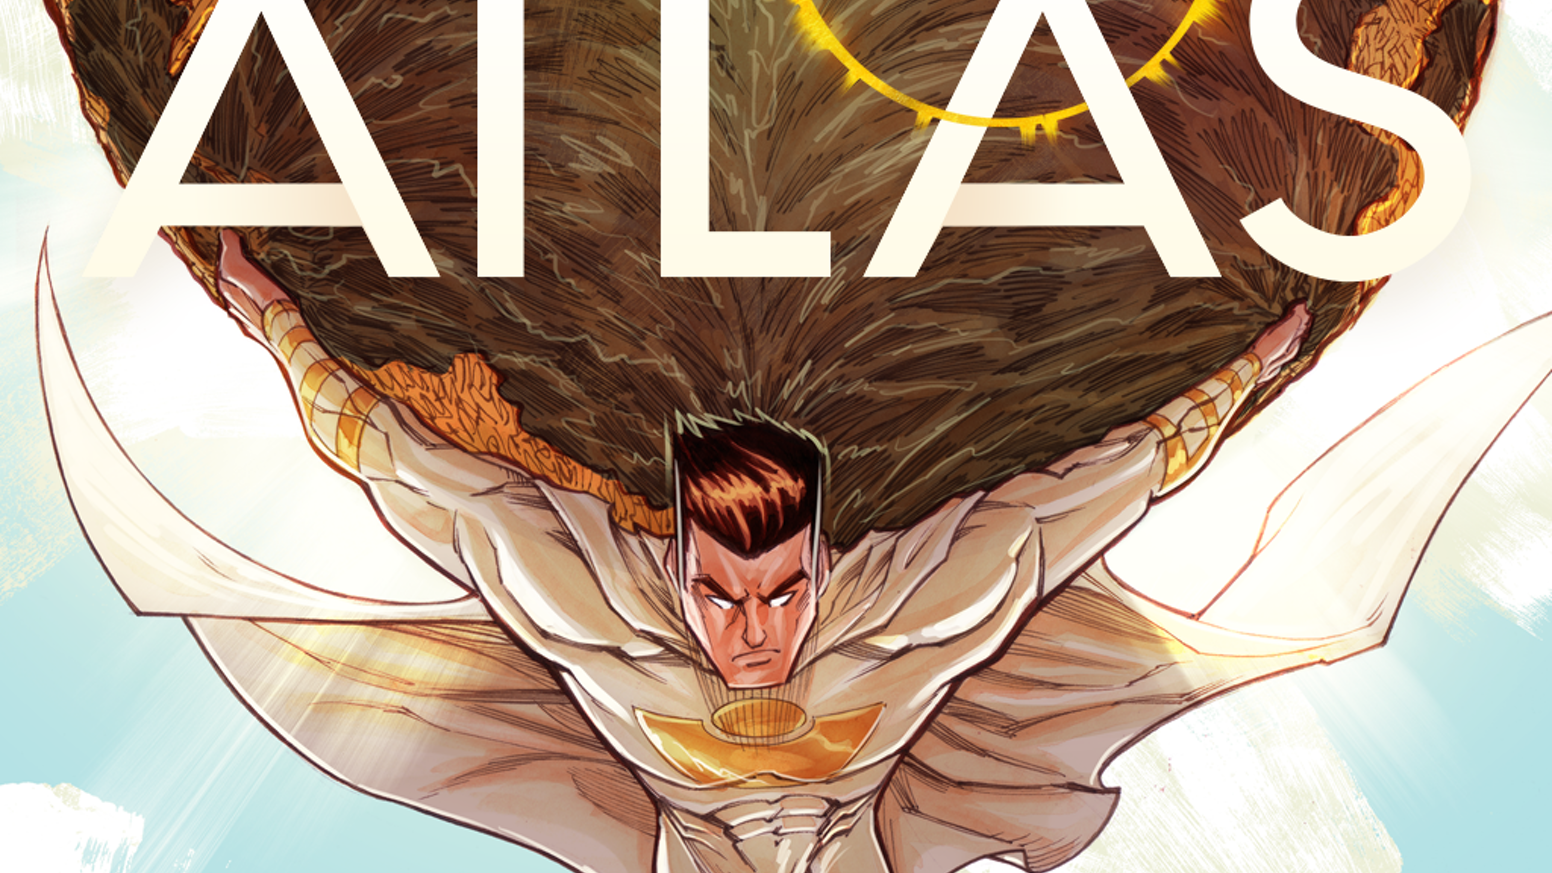 In a mysterious temple a man discovers the secrets of the universe that will transform him into a reality bending superhero - Atlas!